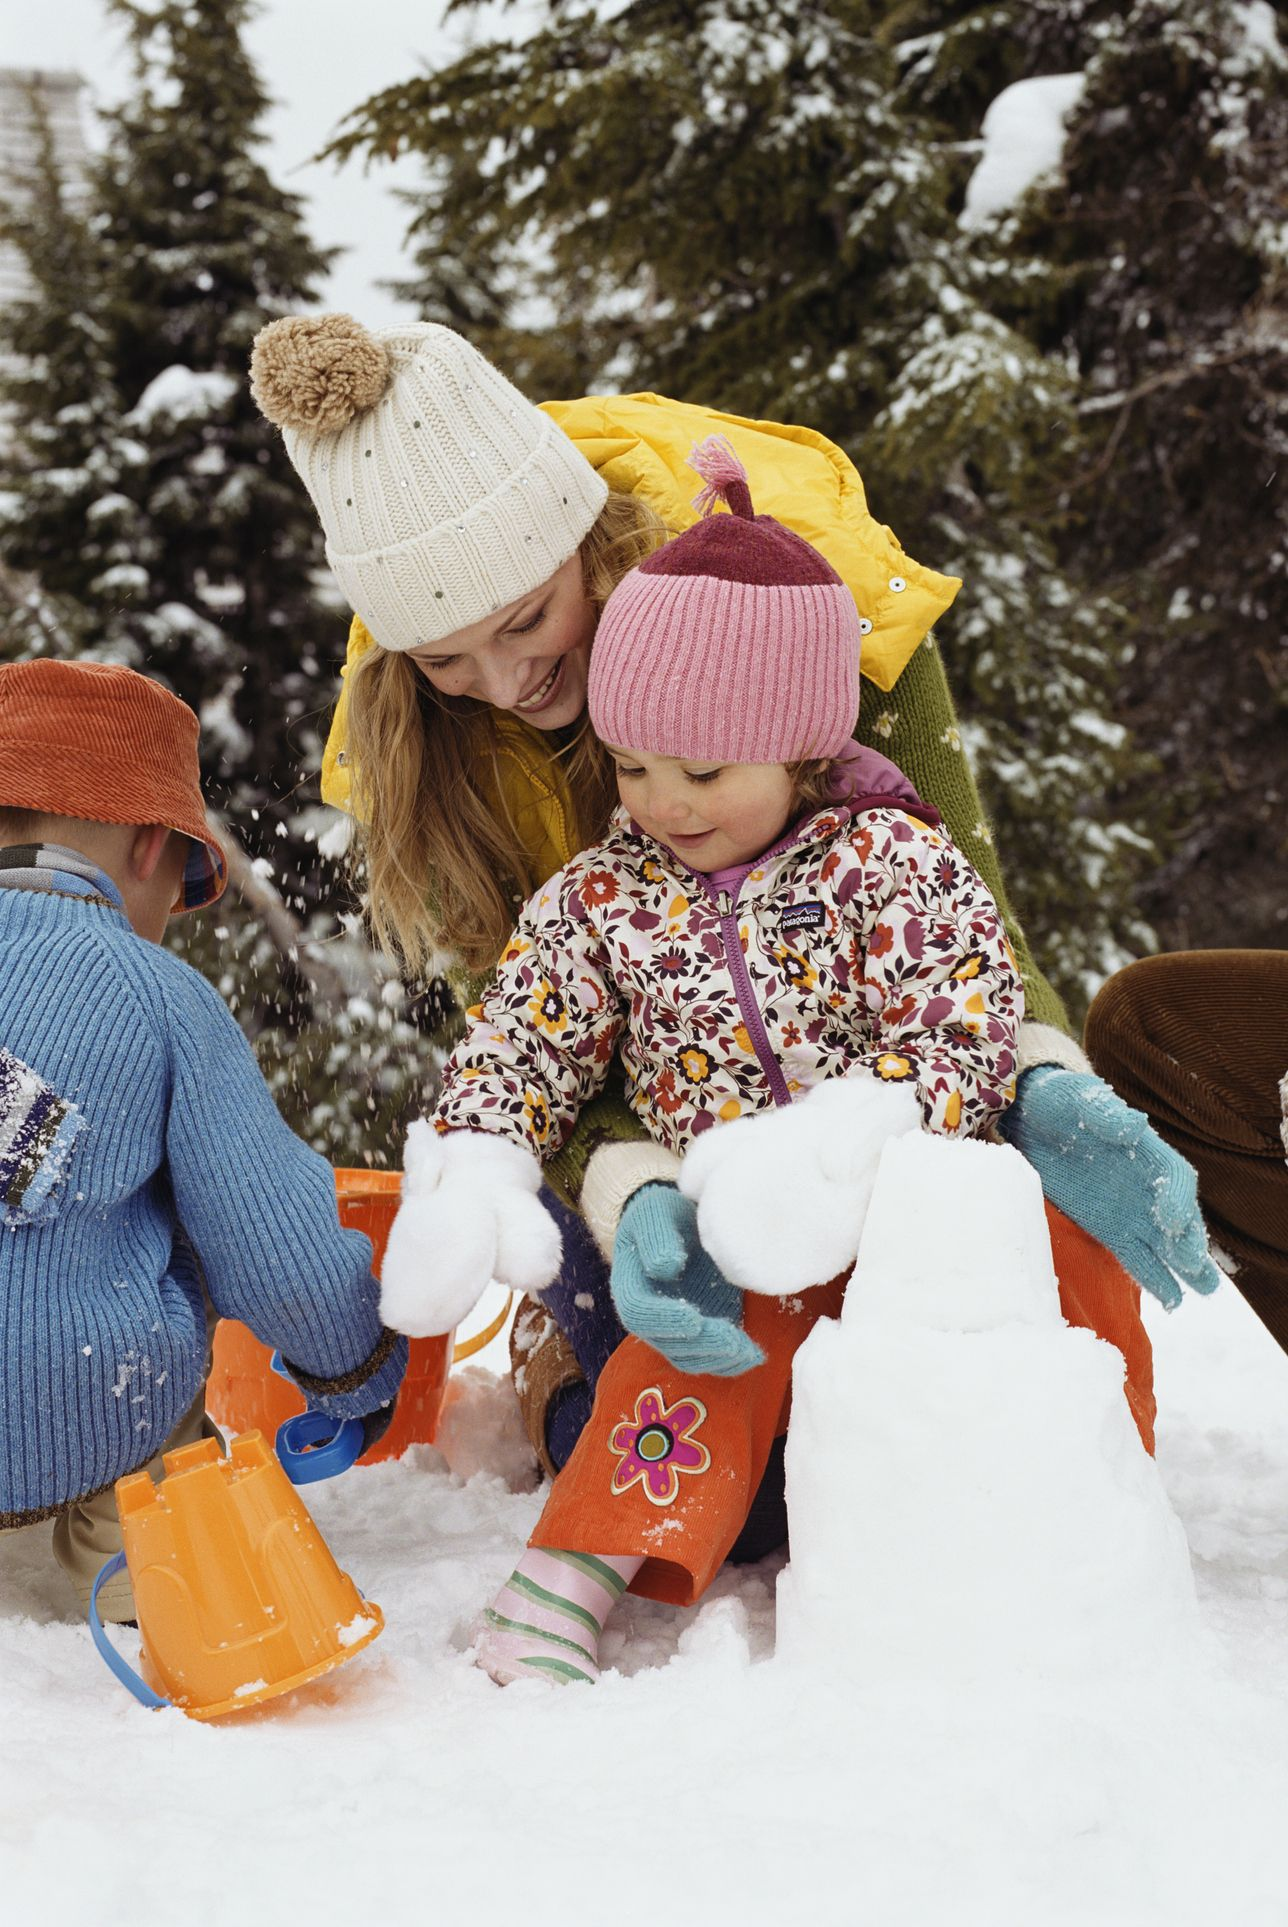 winter health myths - You can catch a cold by being out in the elements too long